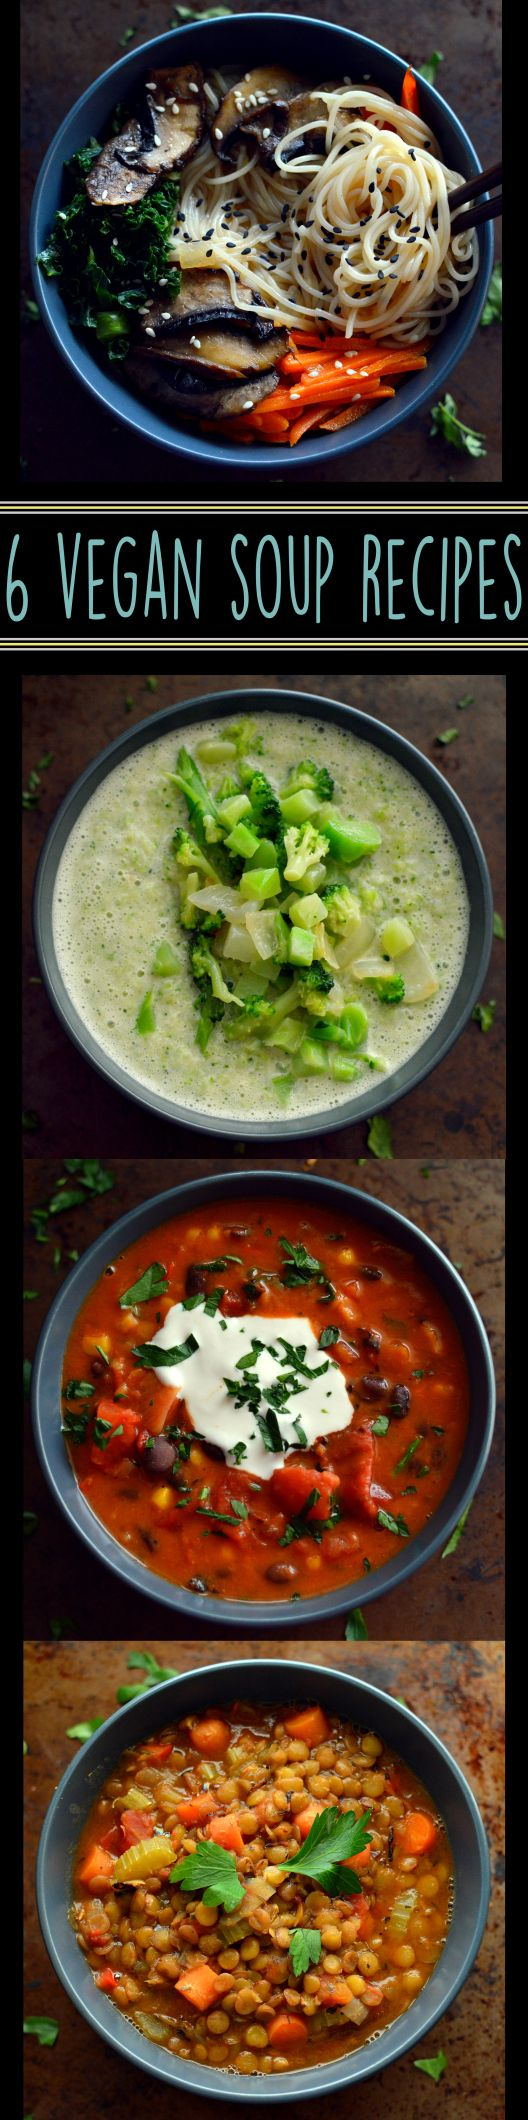 6 Vegan Soup Recipes - Easy Cheap - Rich Bitch Cooking Blog